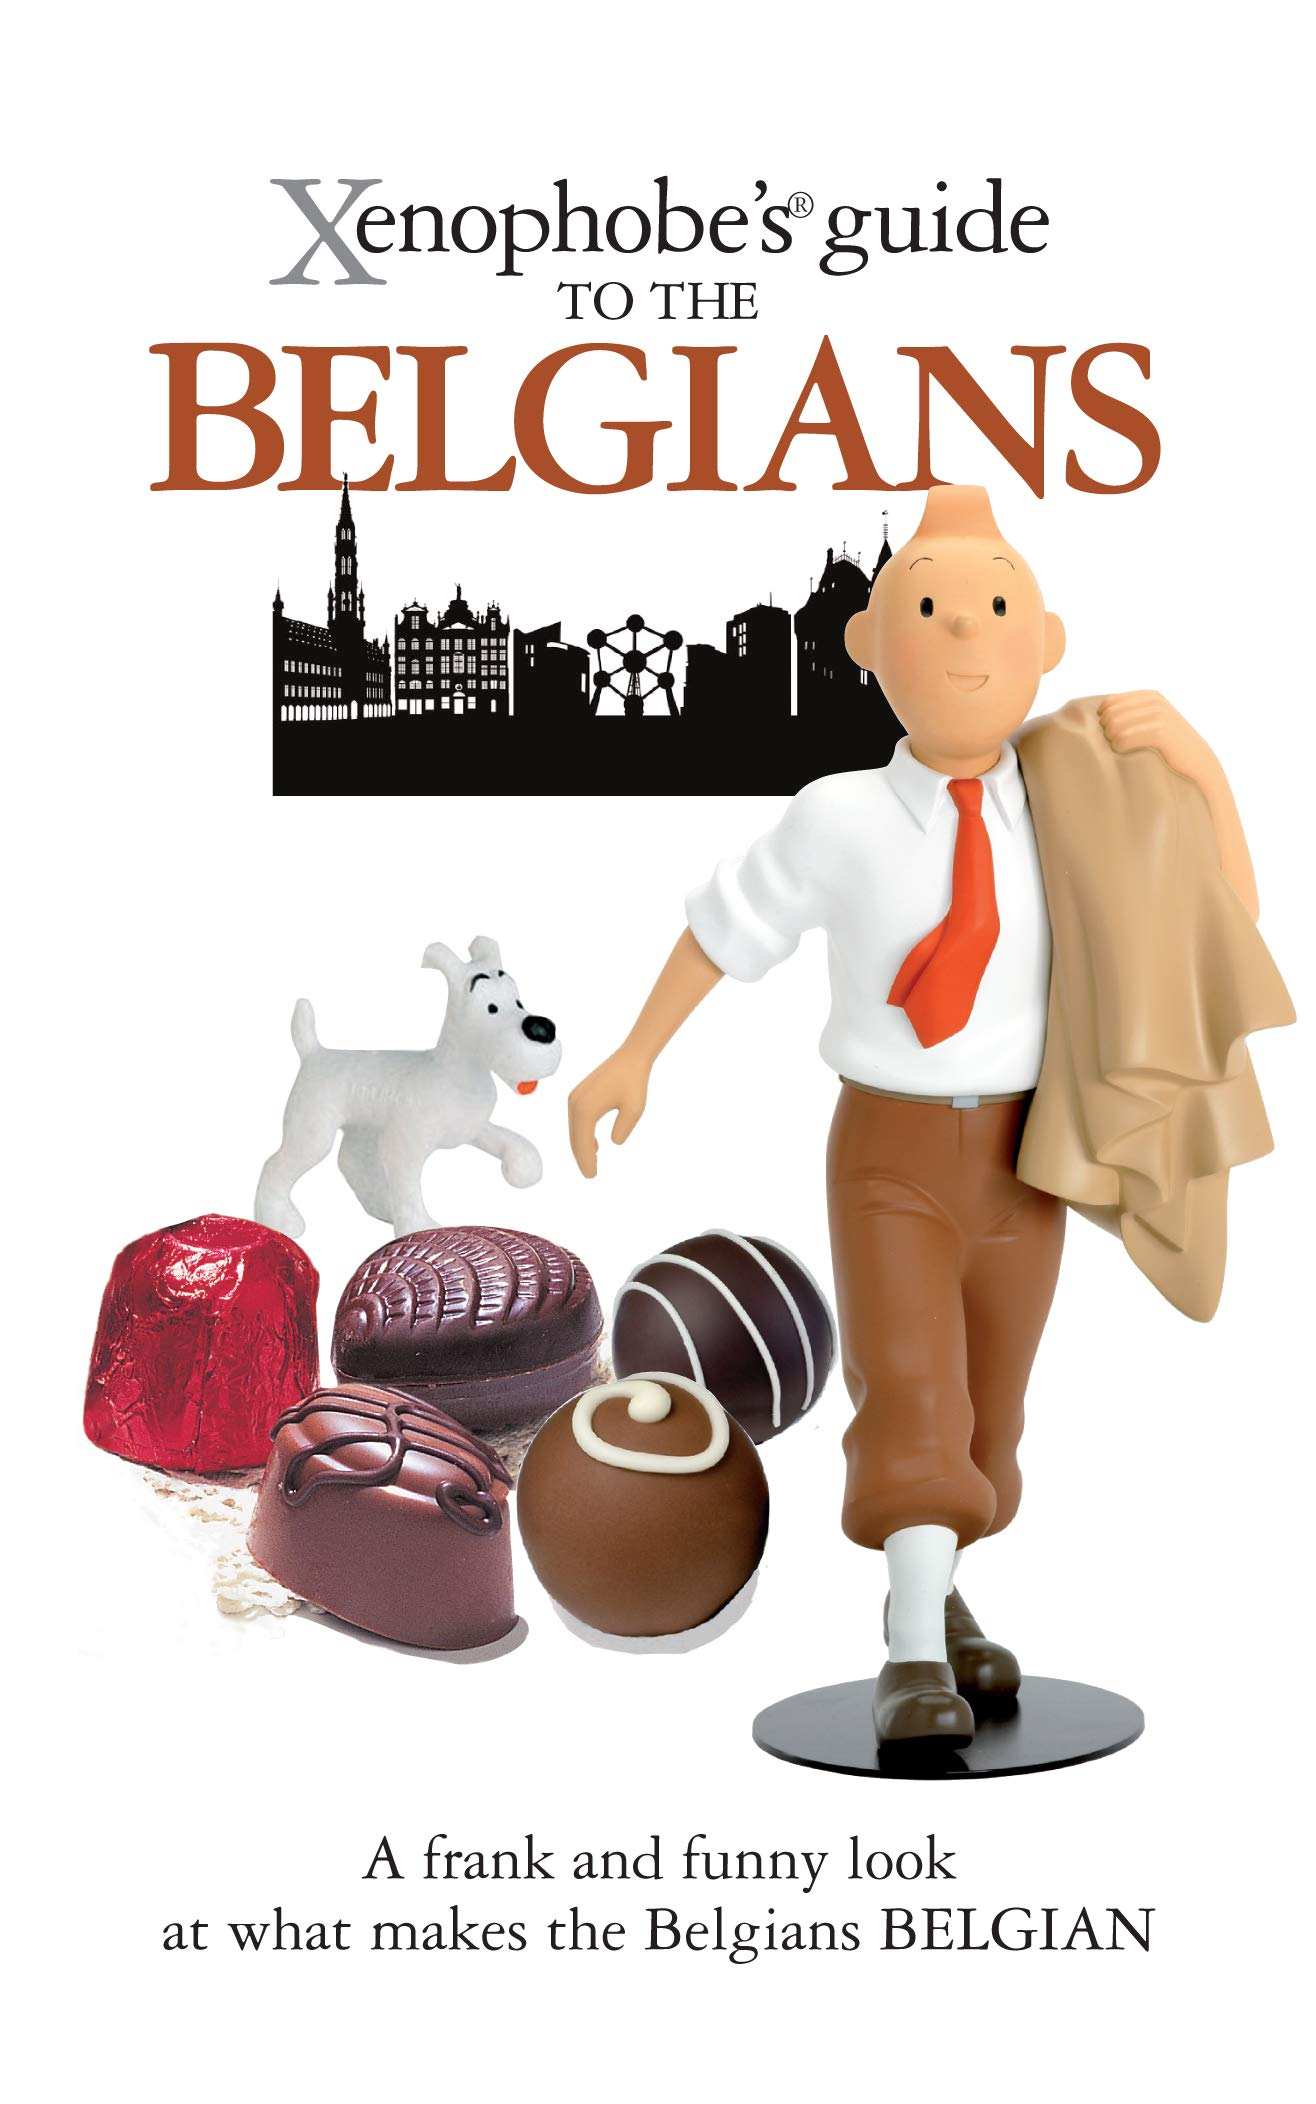 the xenophobes guide to the belgians